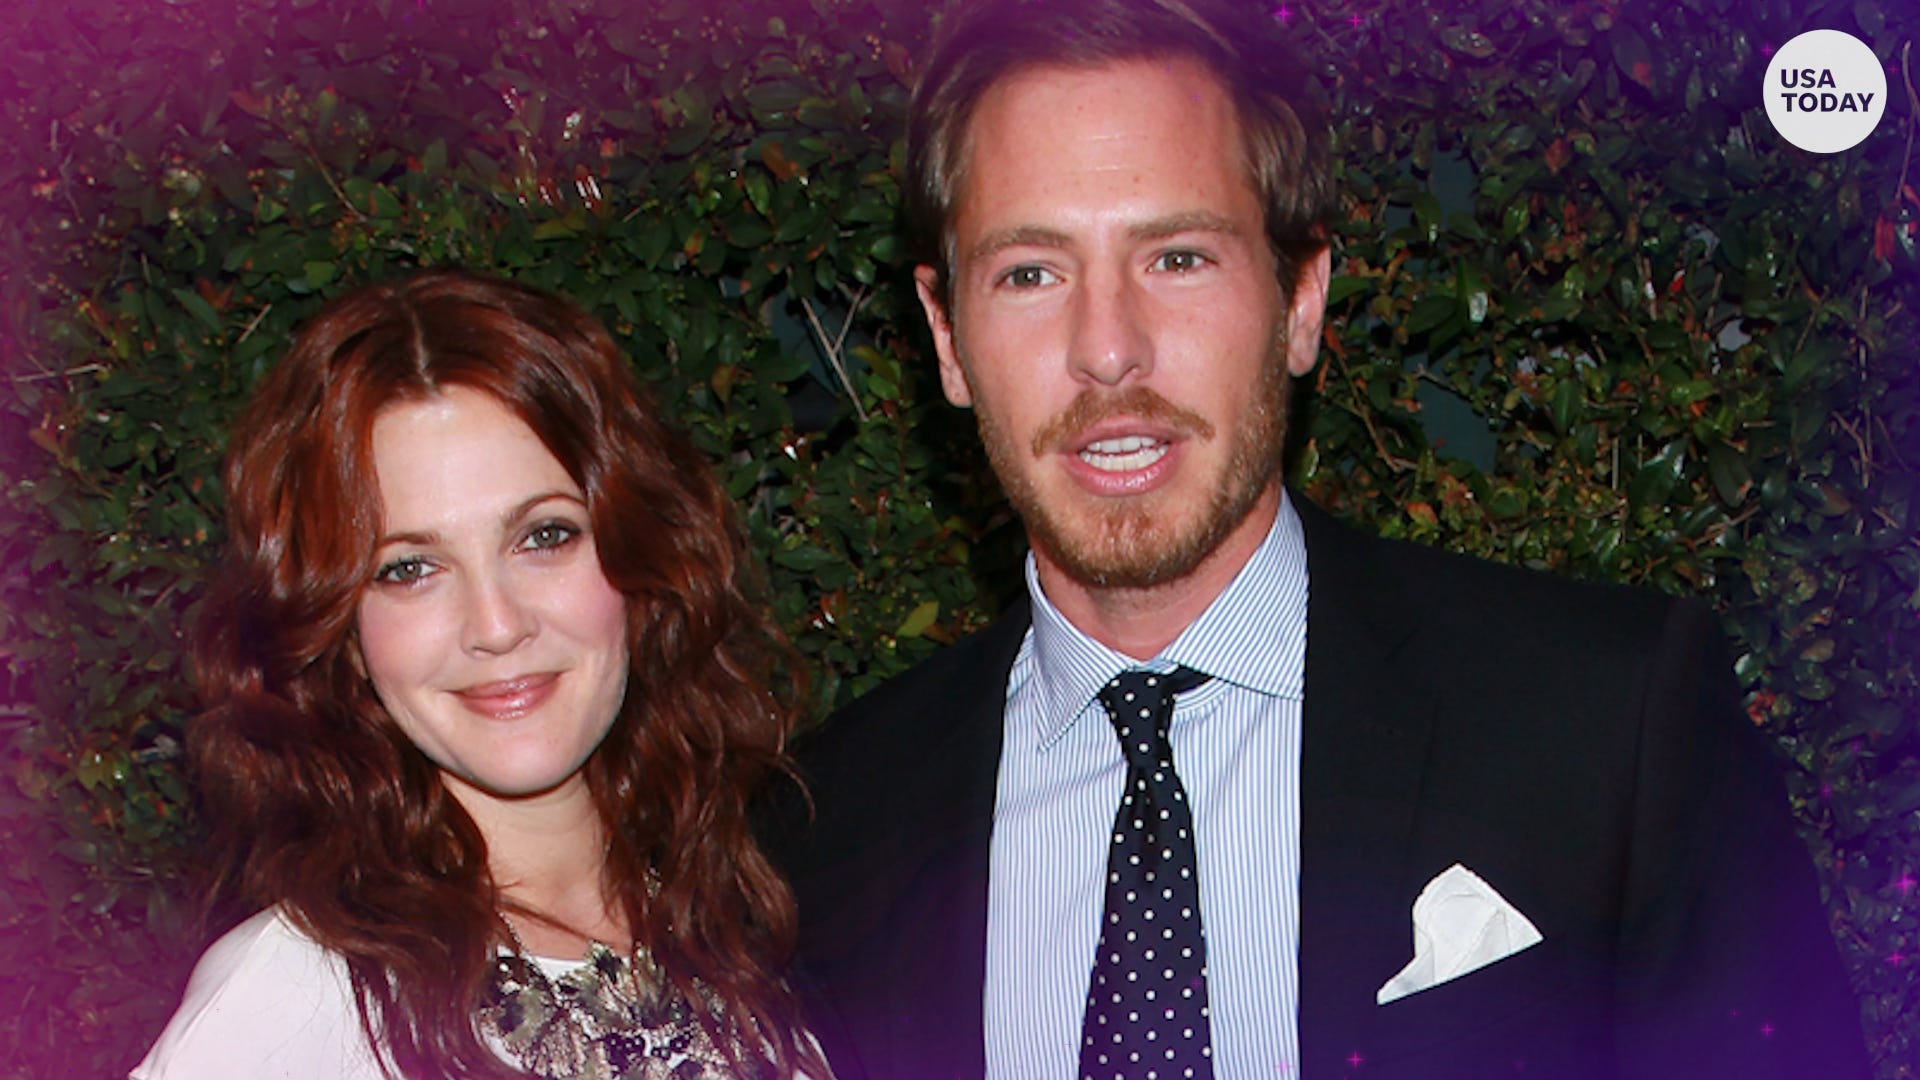 Drew Barrymore opens up about divorce from Will Kopelman: 'I took it really hard'